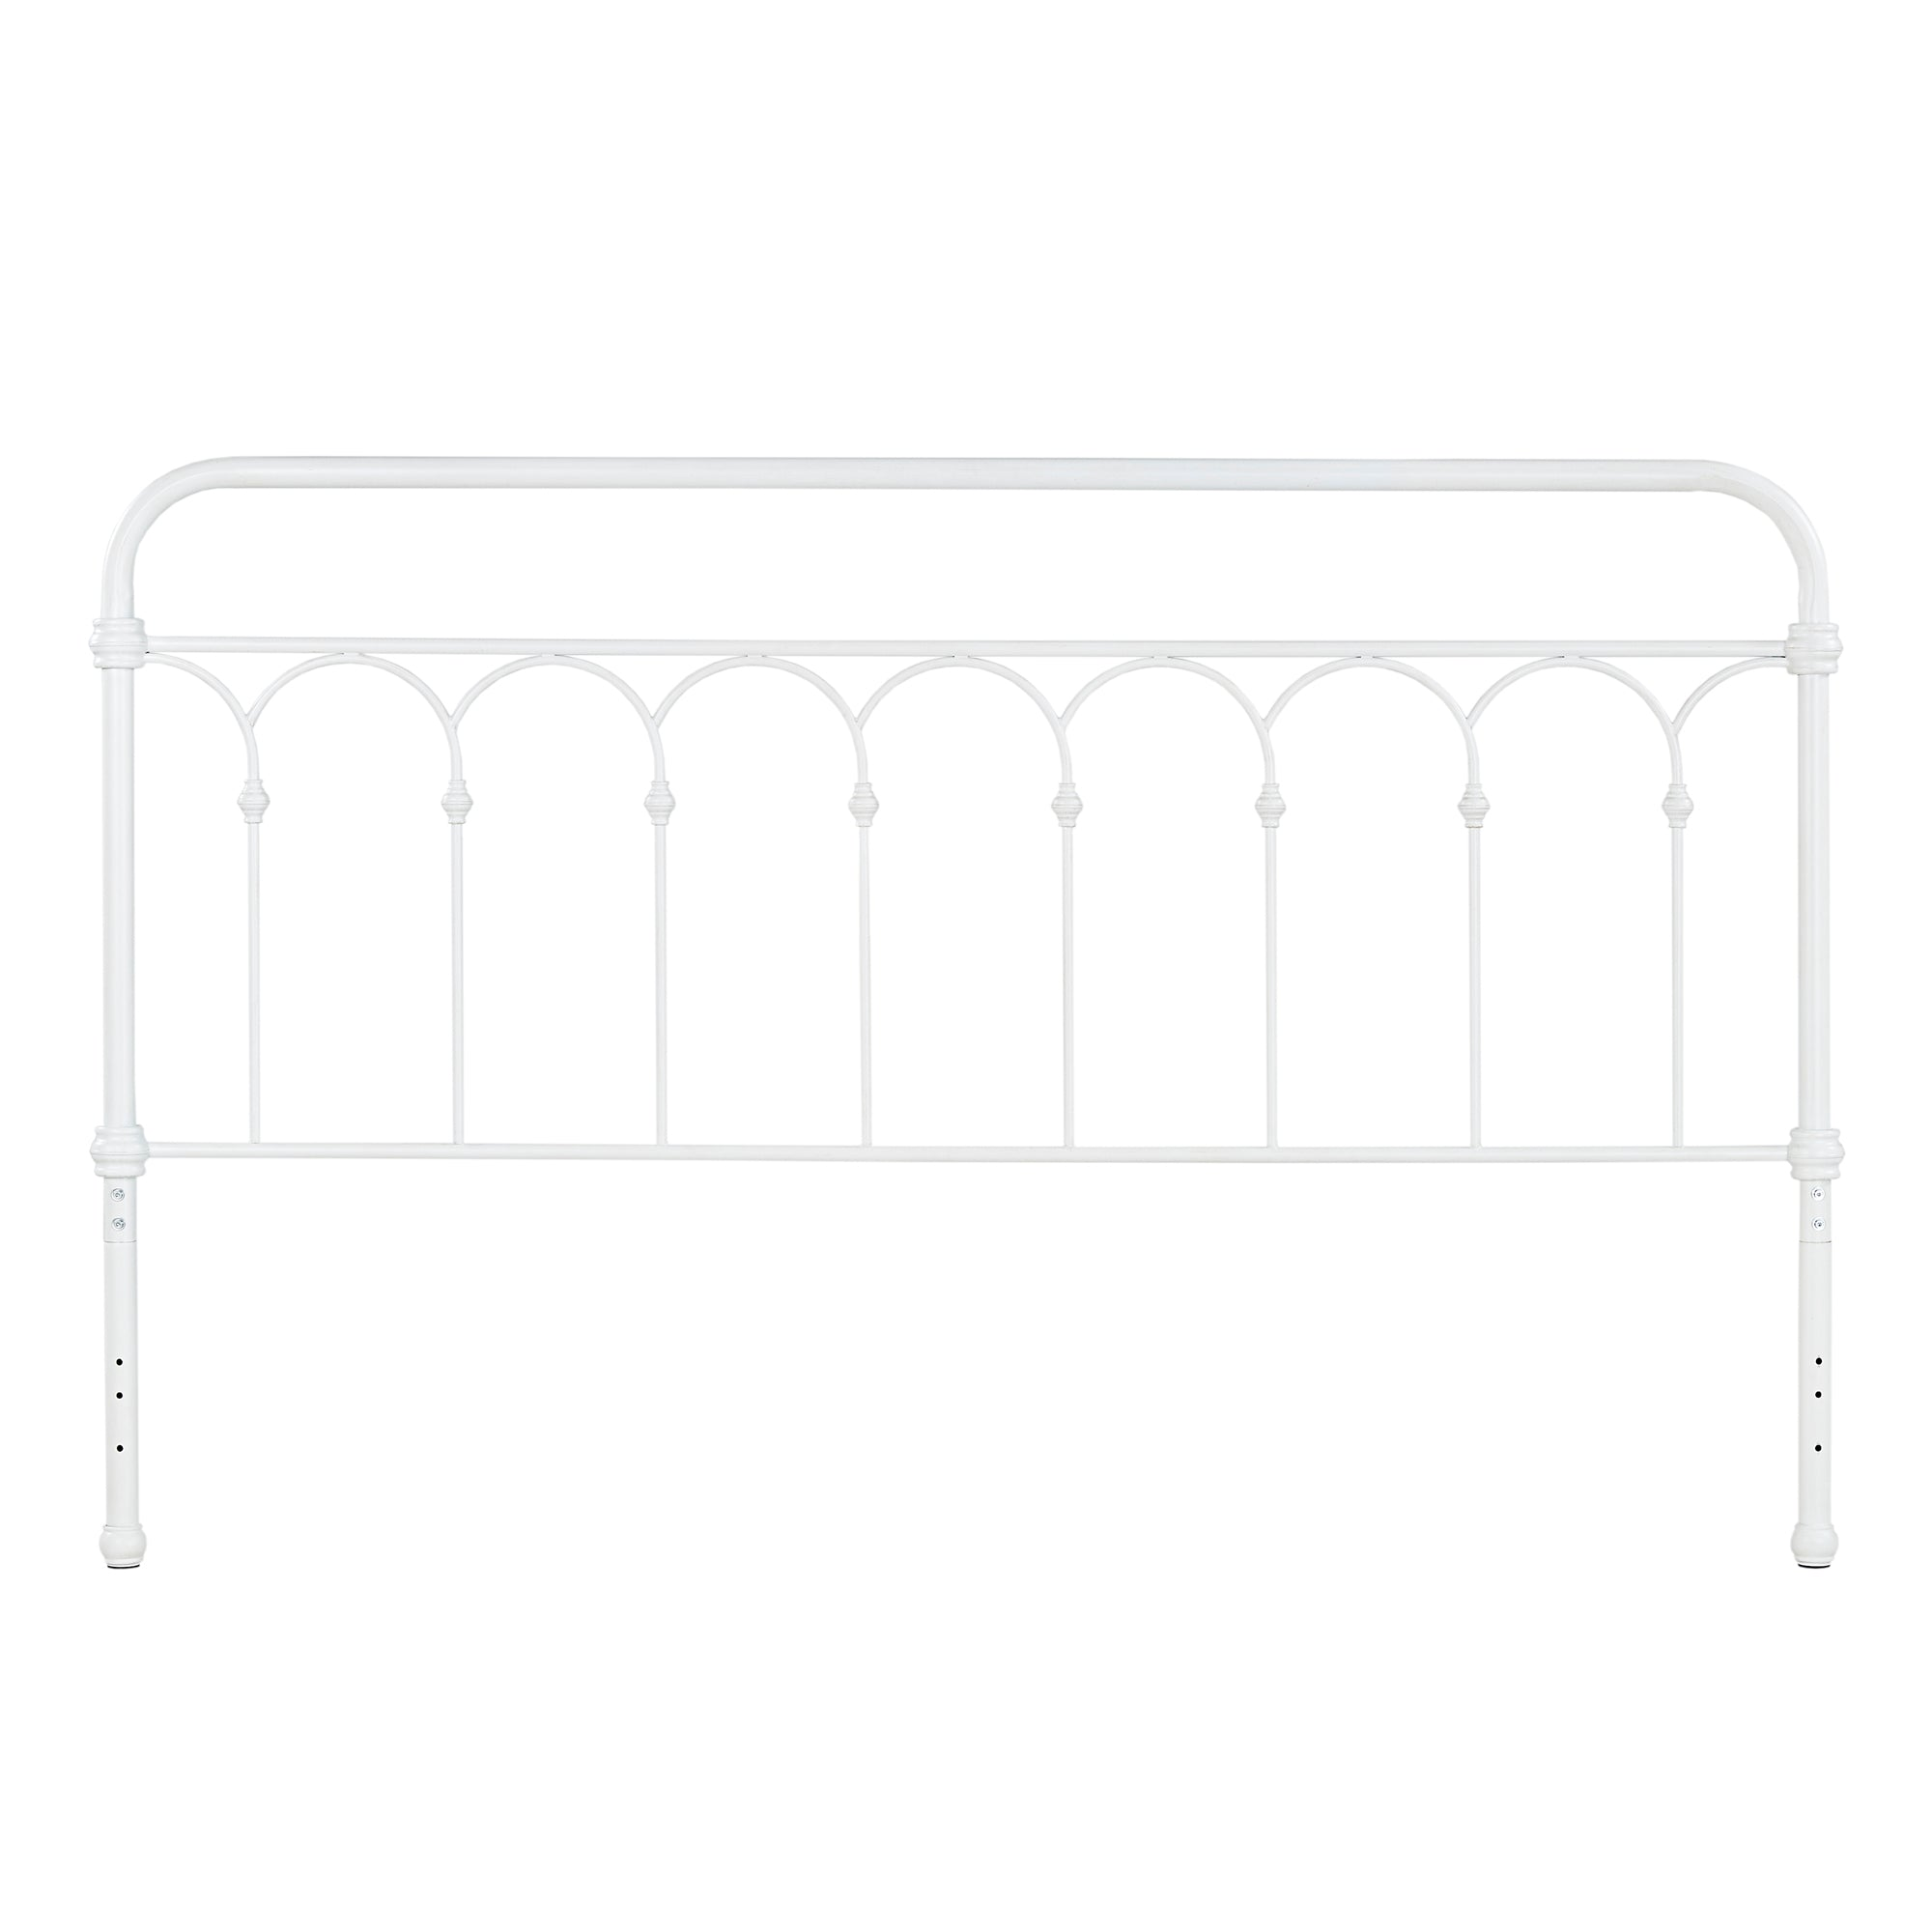 Casted Knot Metal Bed - Antique White - King (King Size)